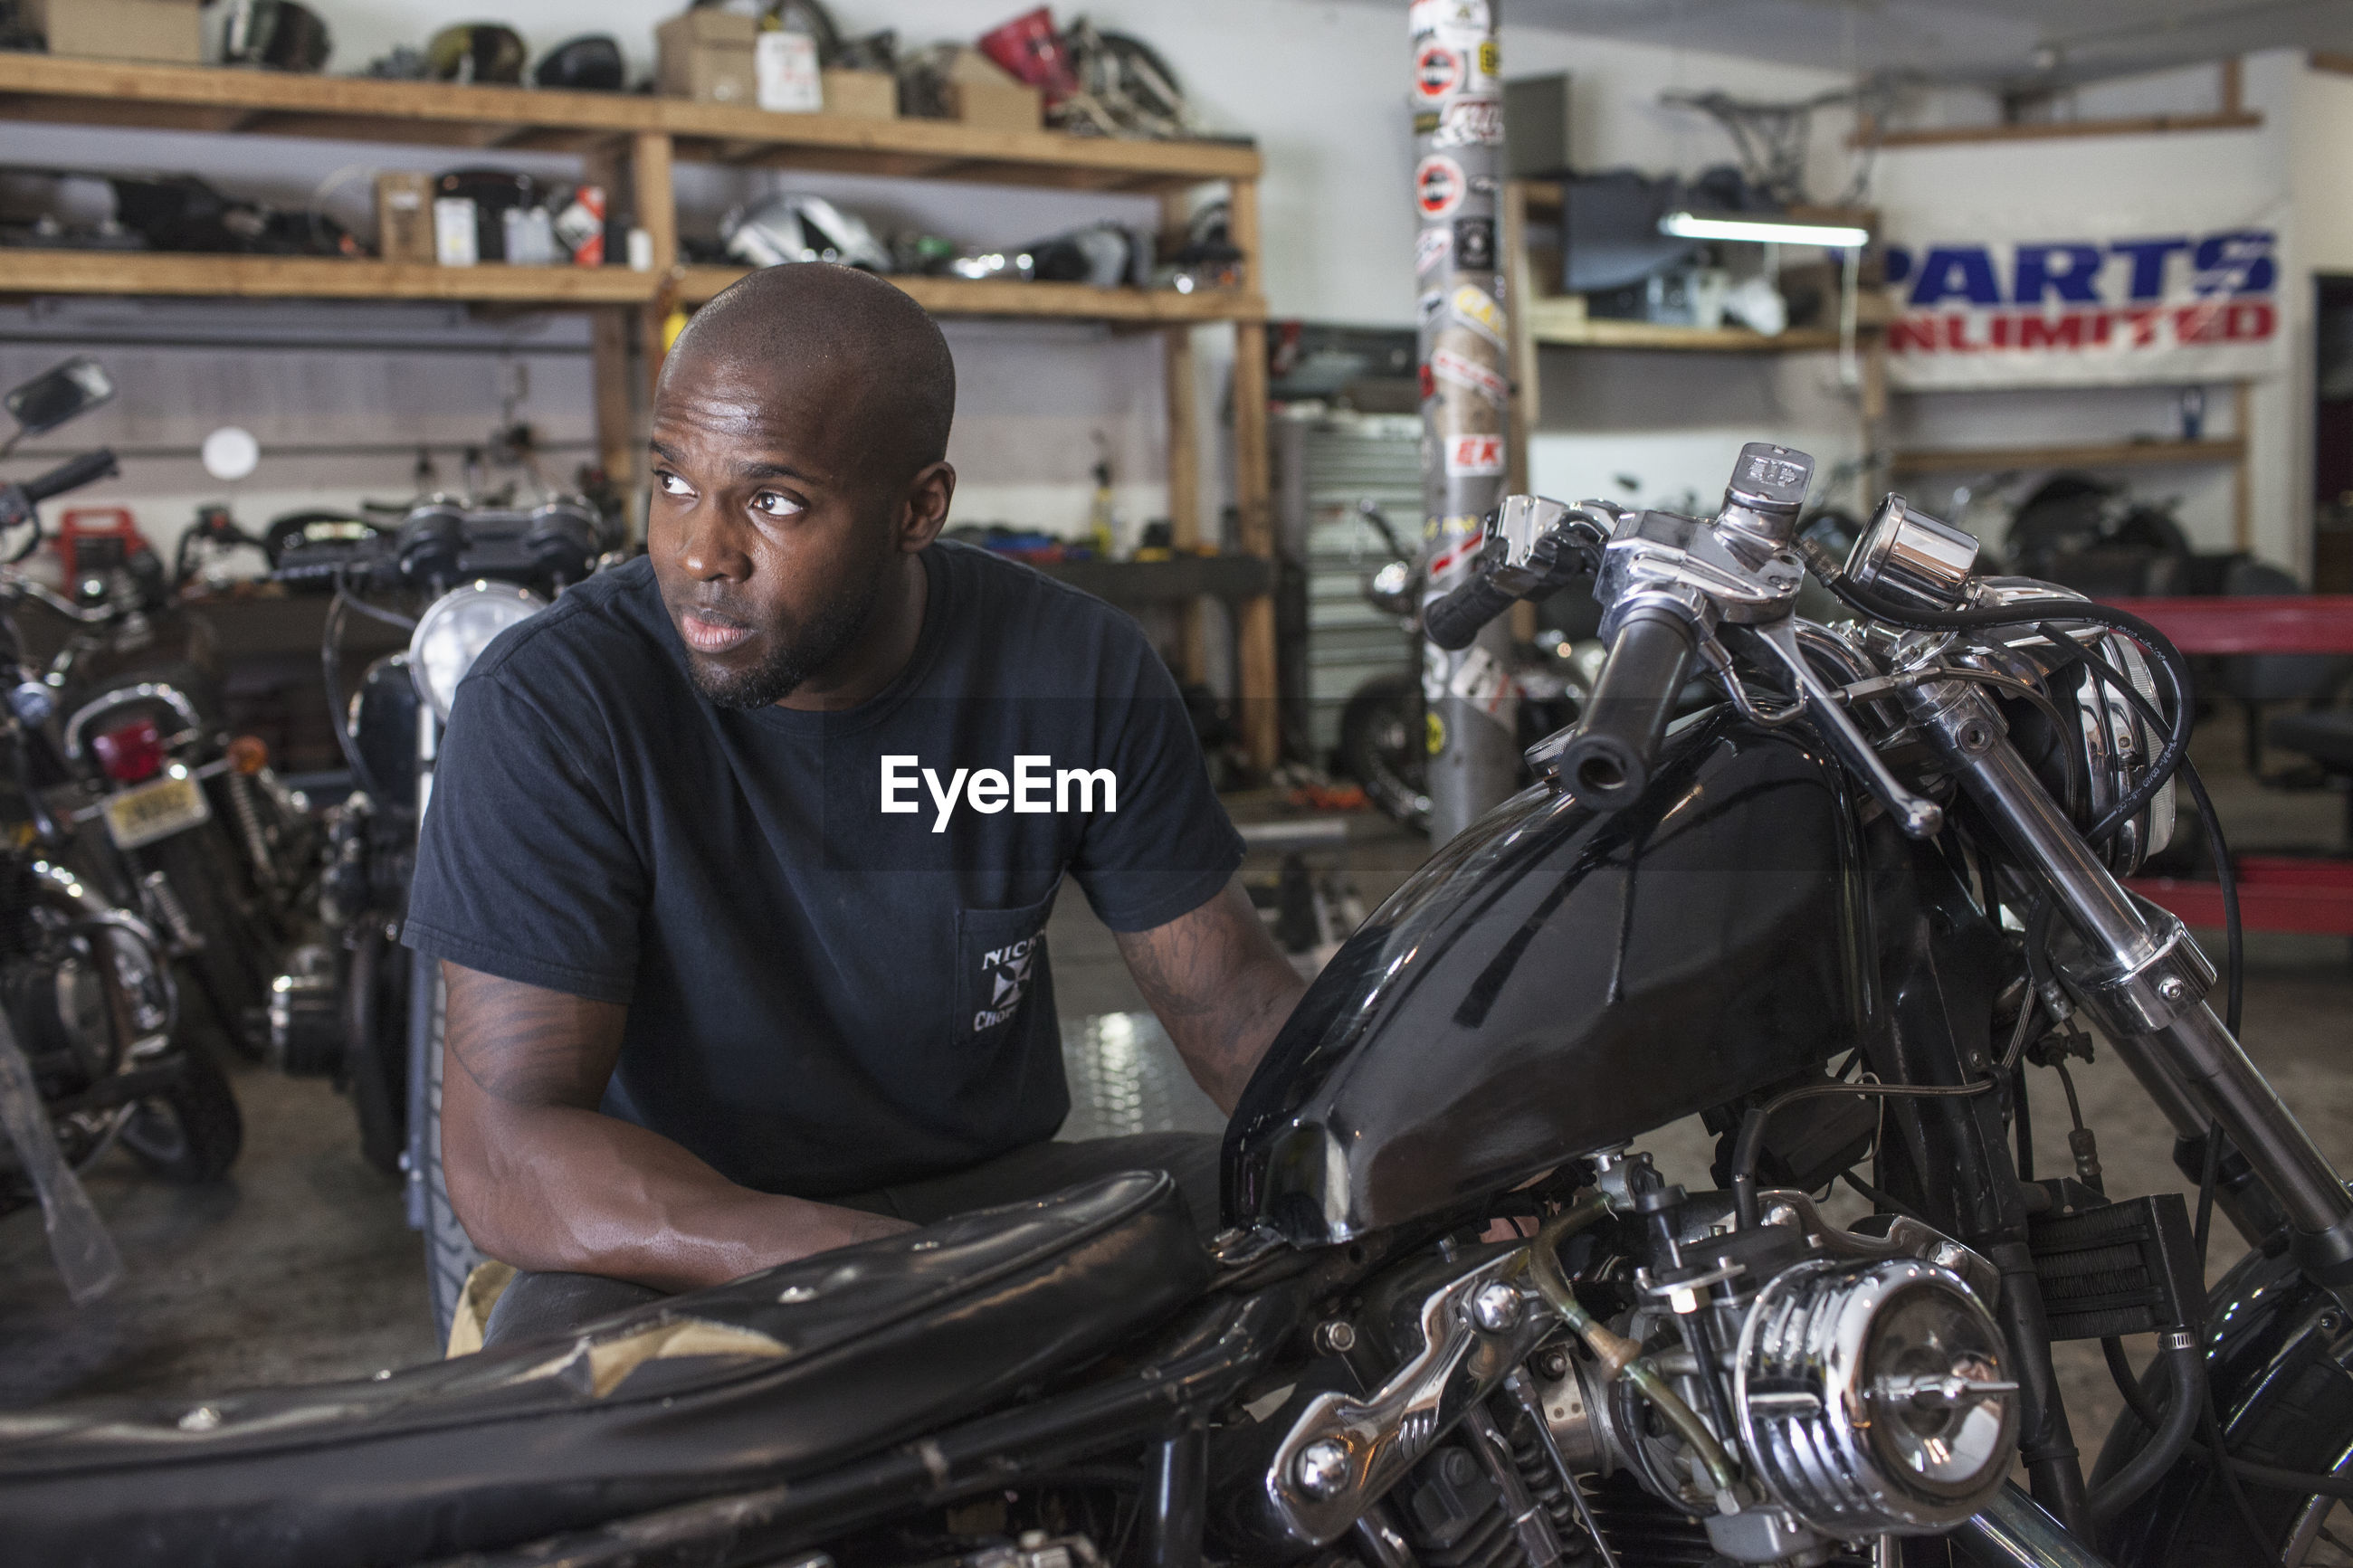 A young man fixing a motorcycle.